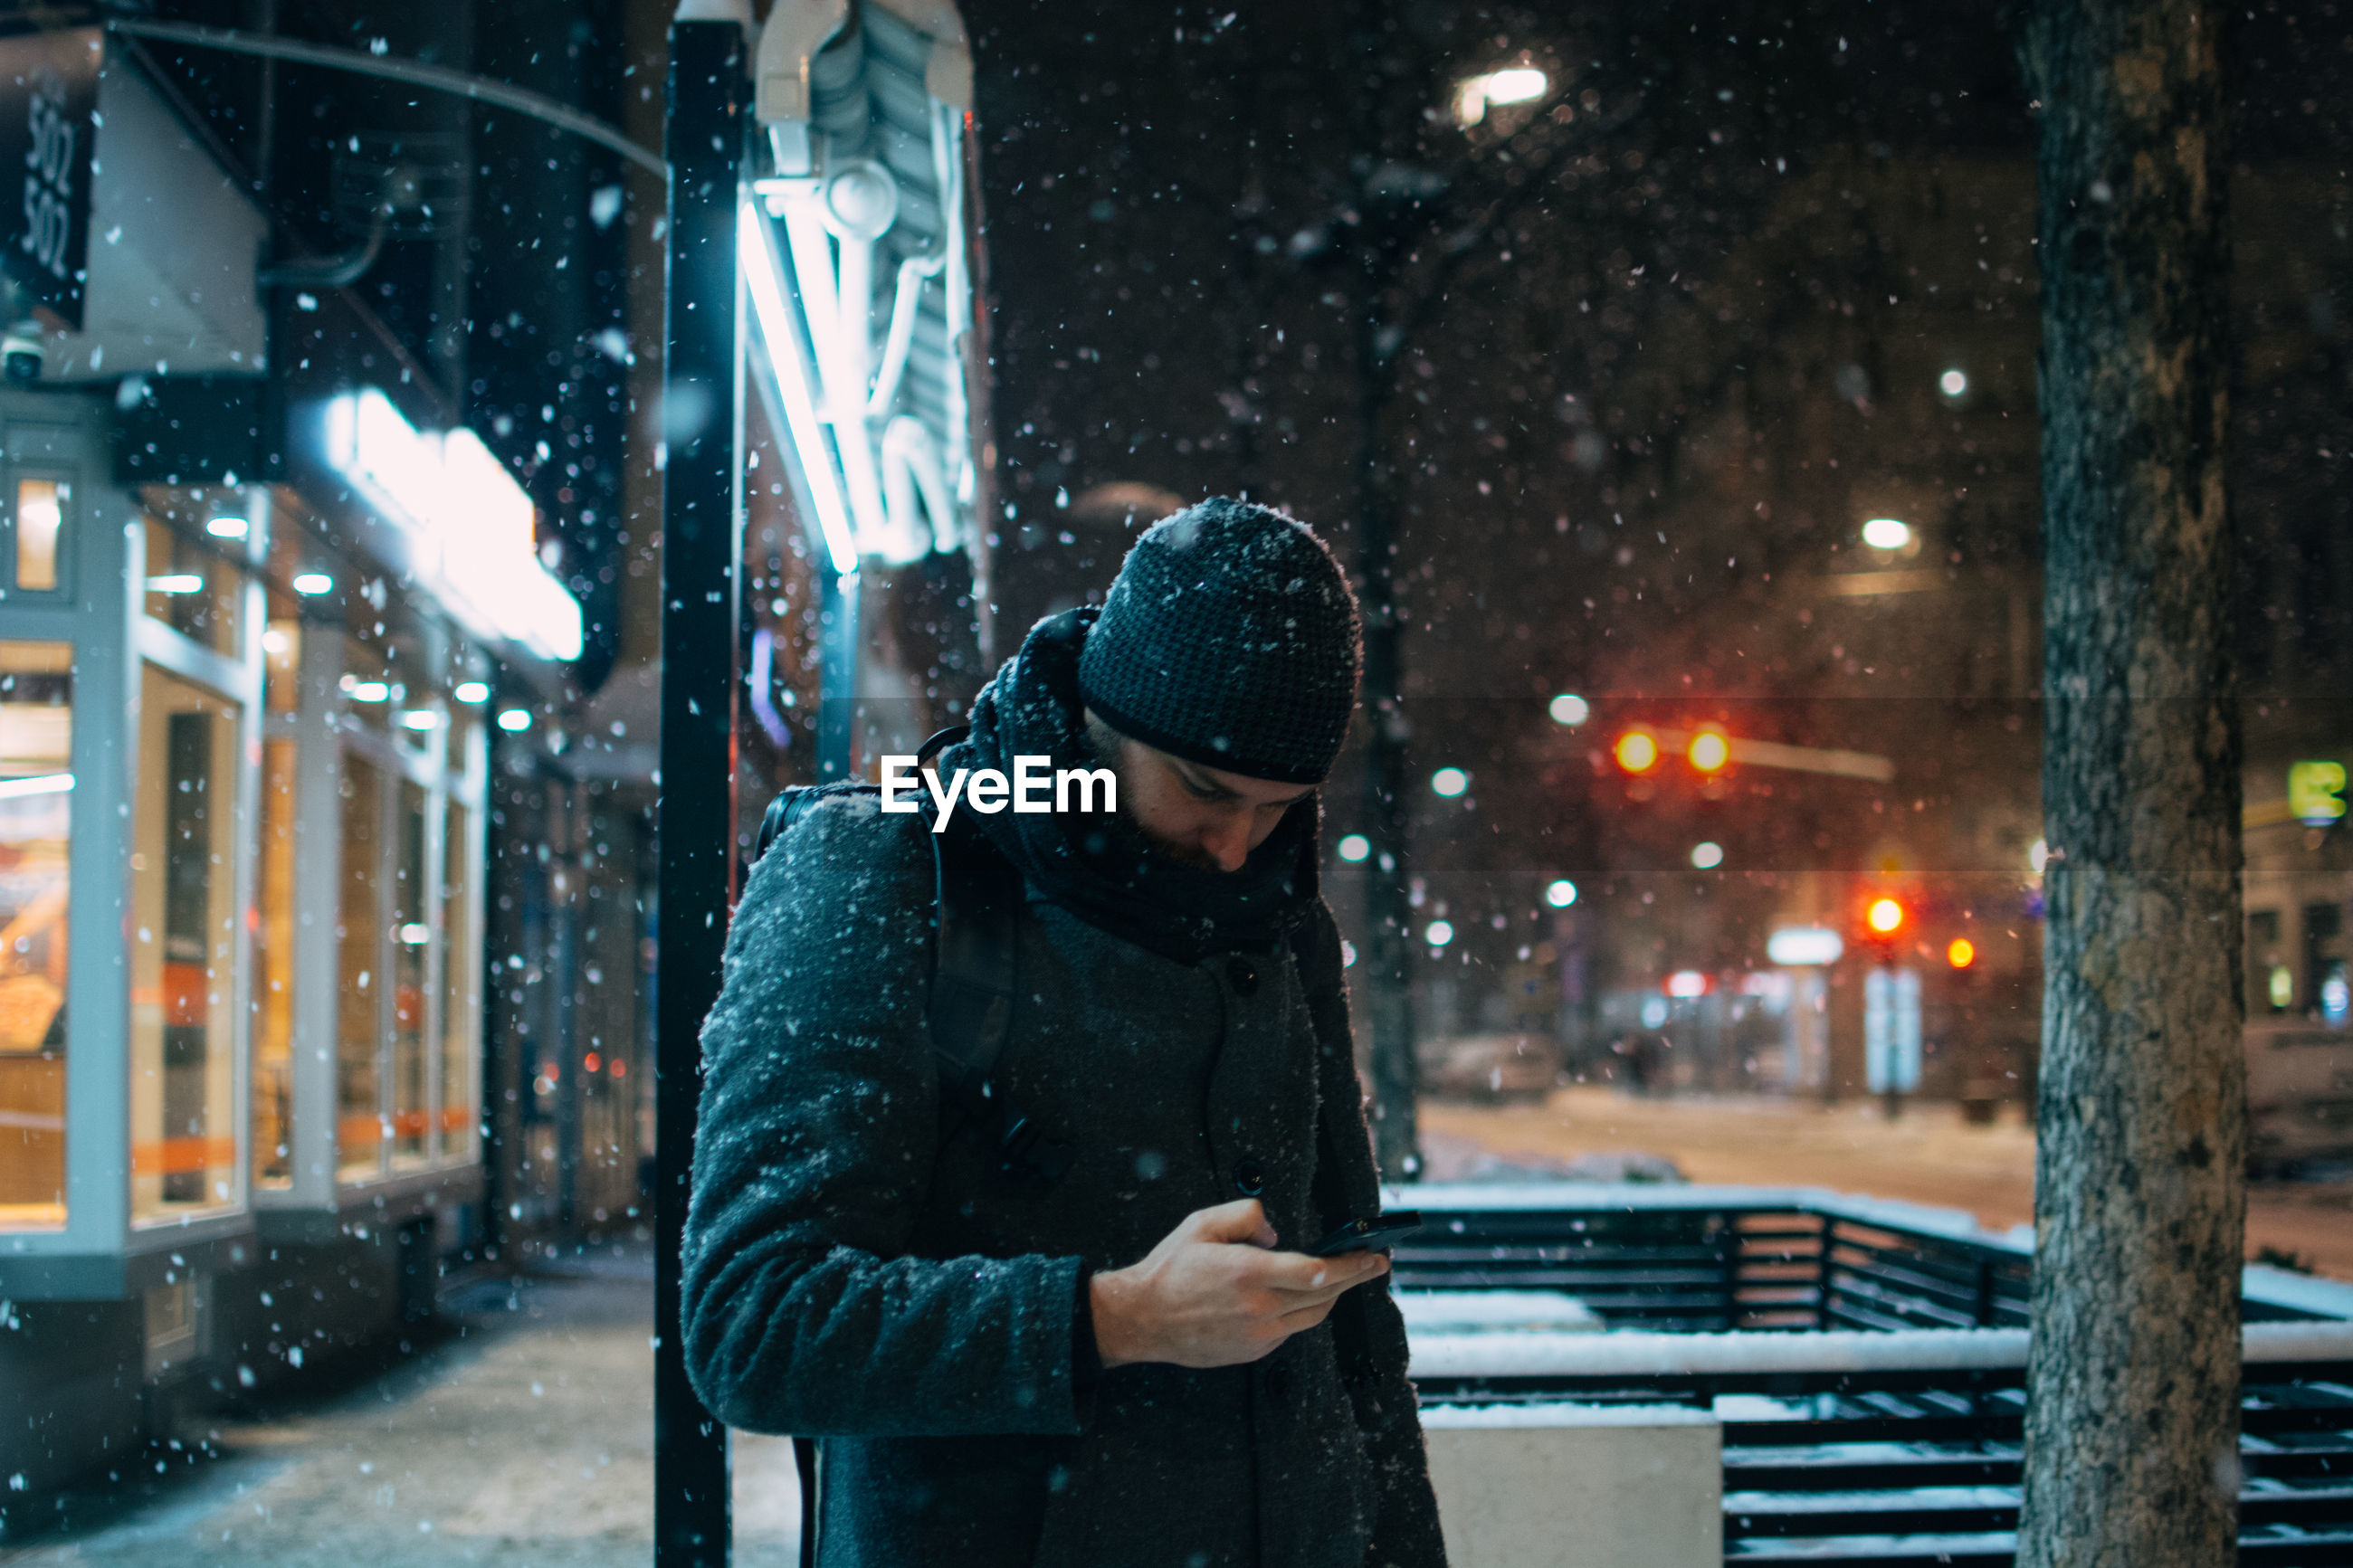 Man using phone on street in city at night during winter